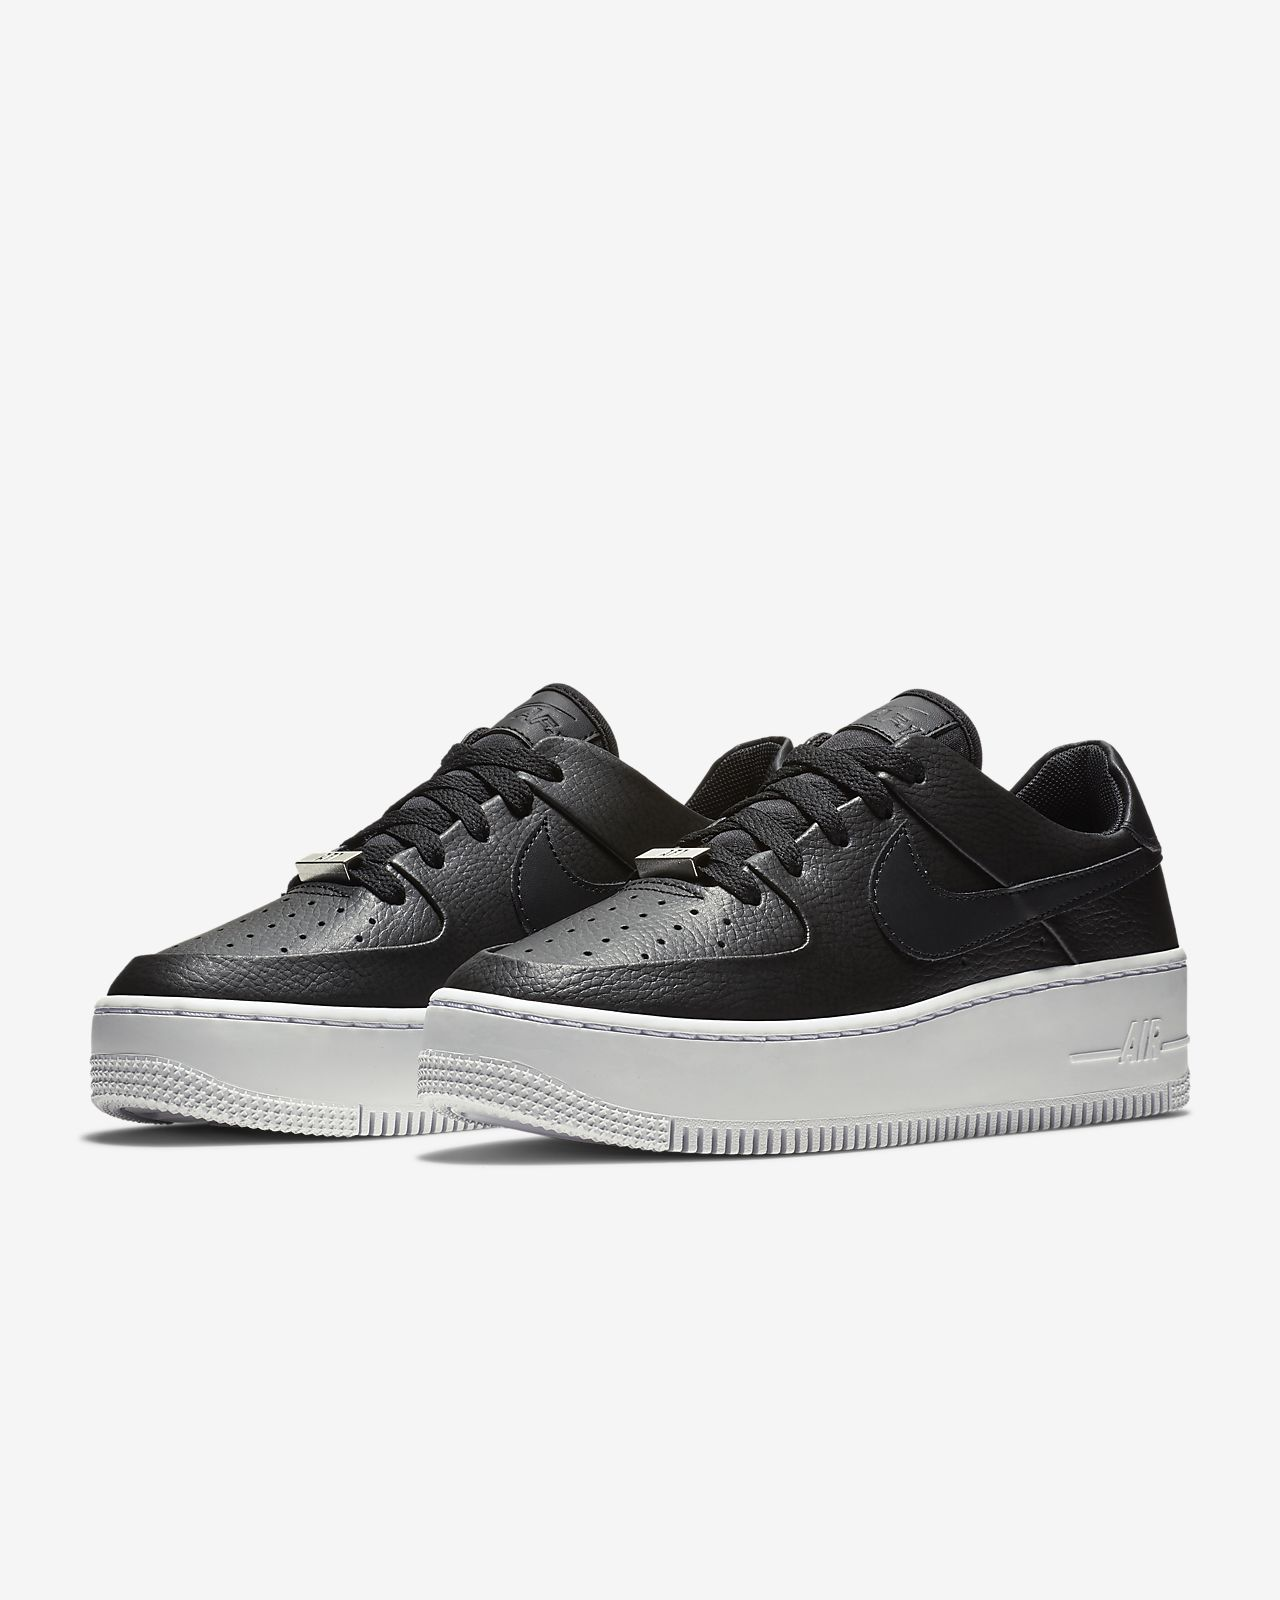 pas cher pour réduction 2e727 609a5 Nike Air Force 1 Sage Low Women's Shoe